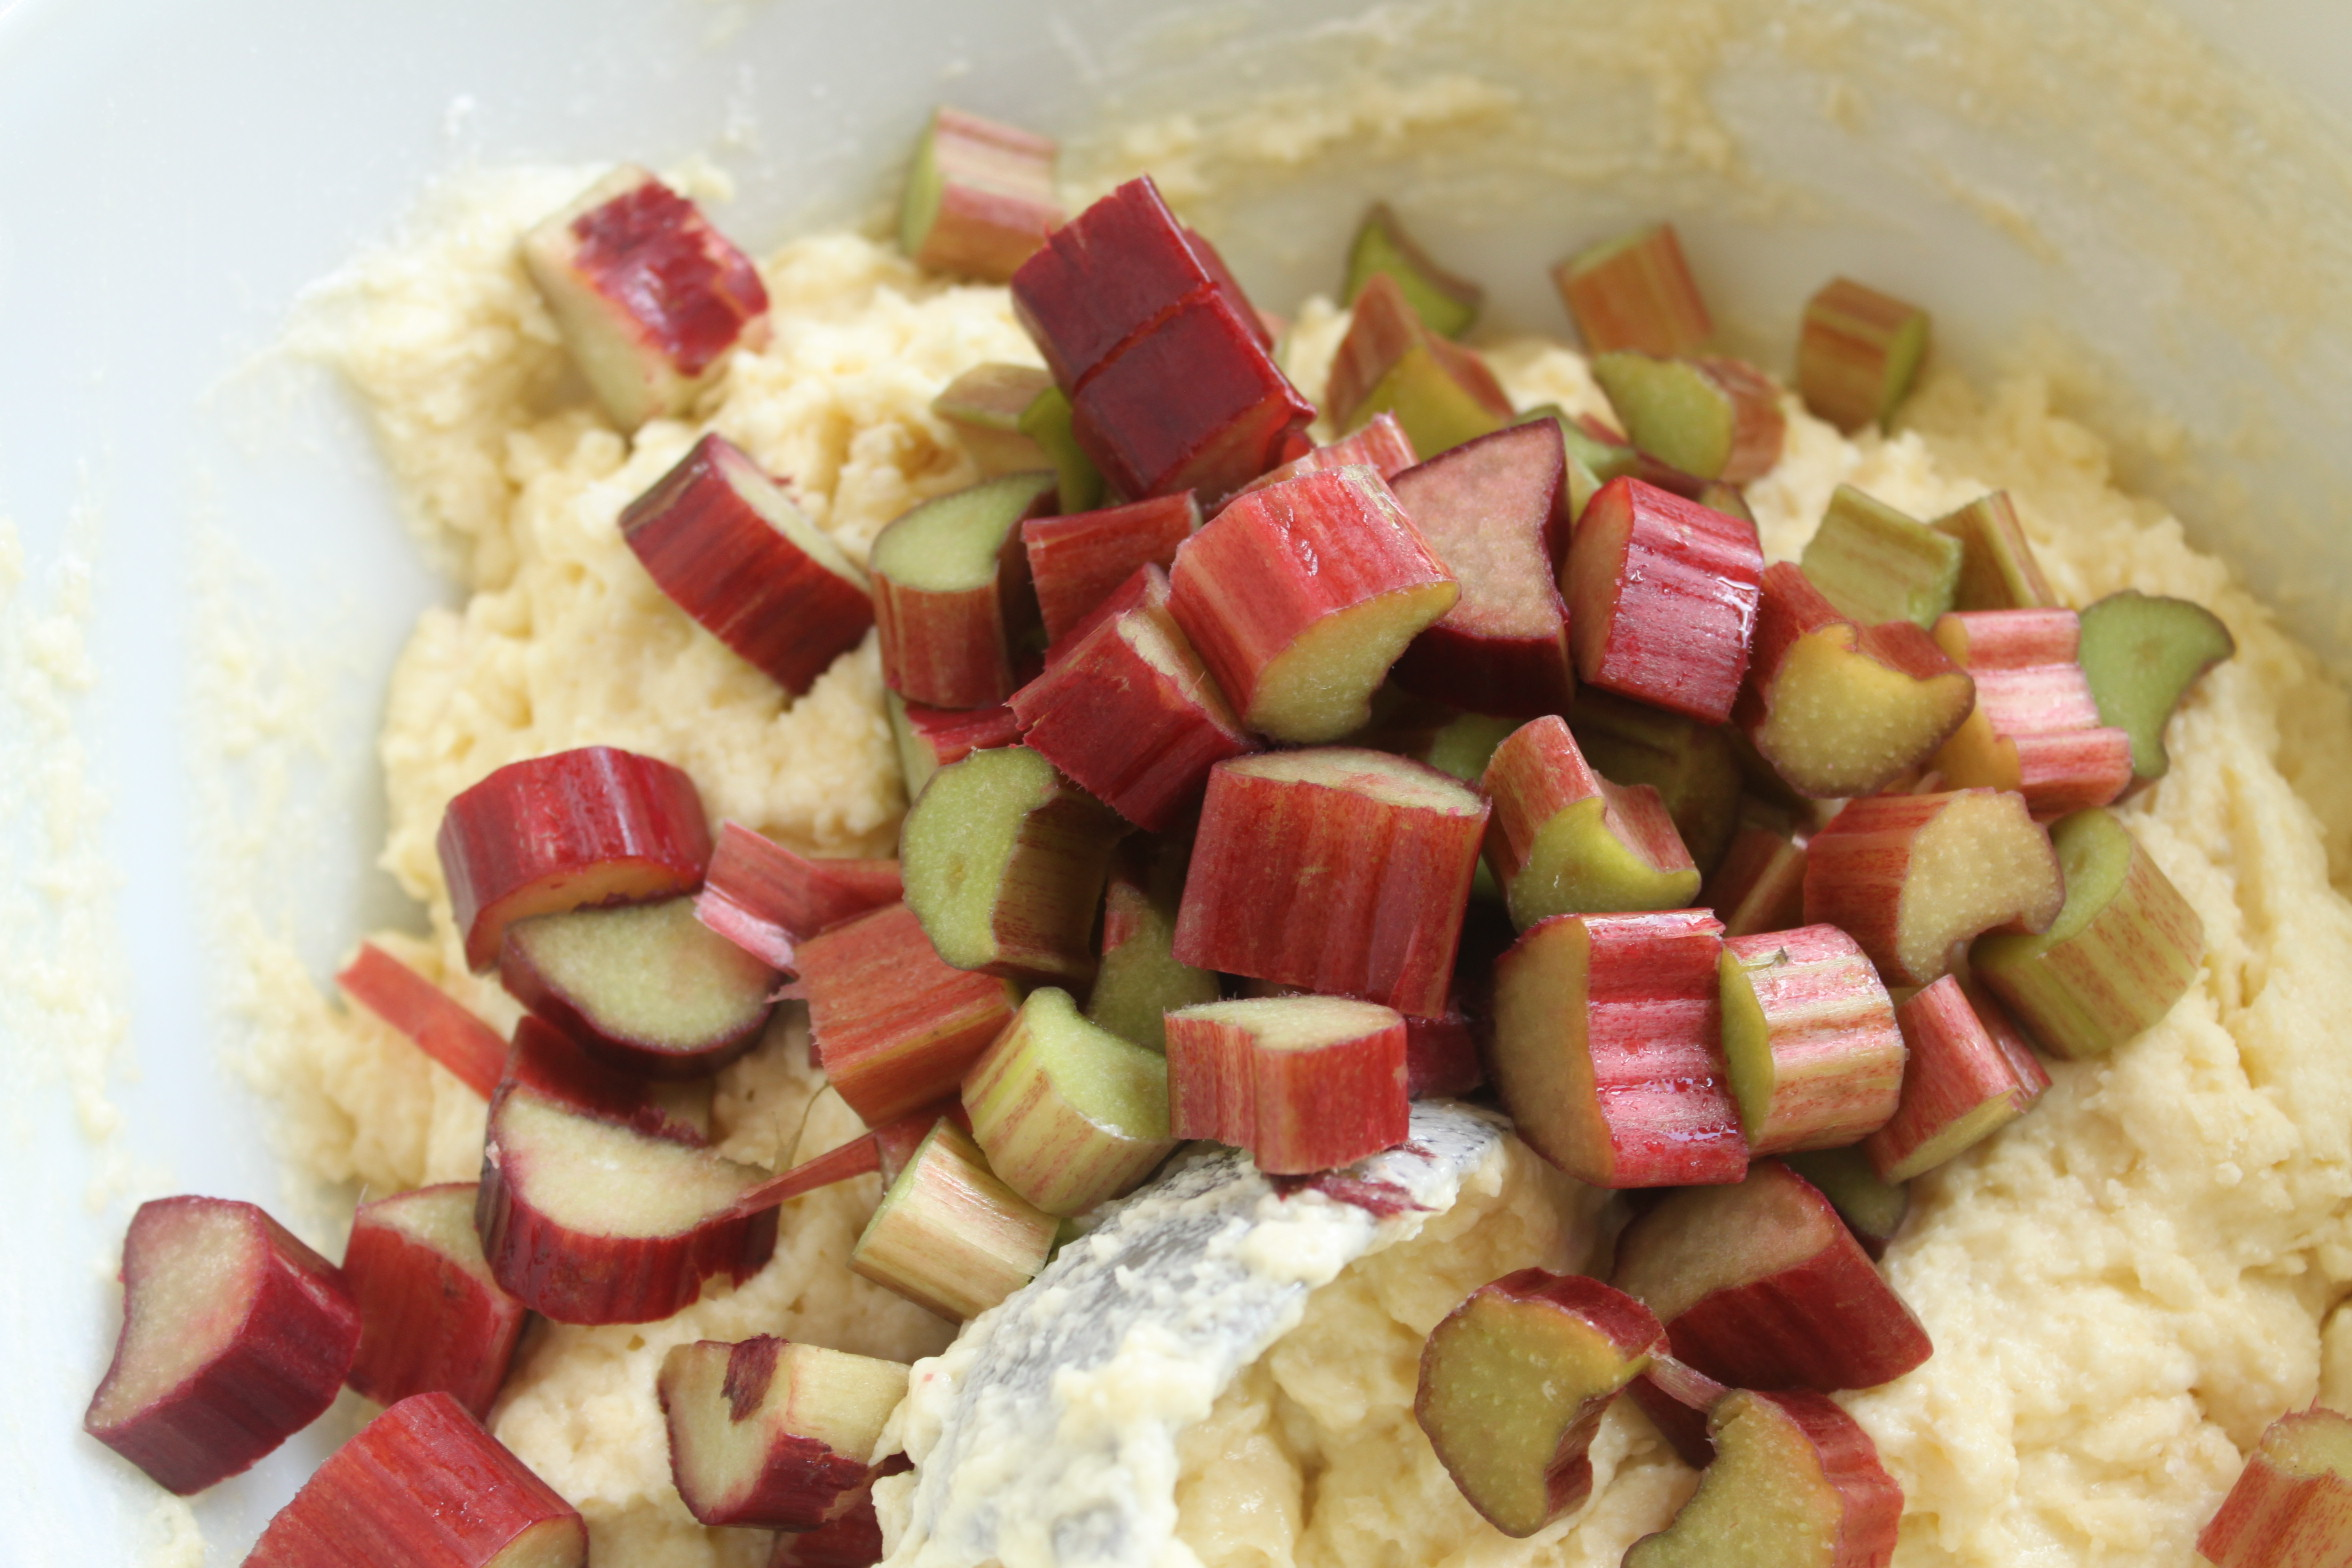 adding fruit to the batter